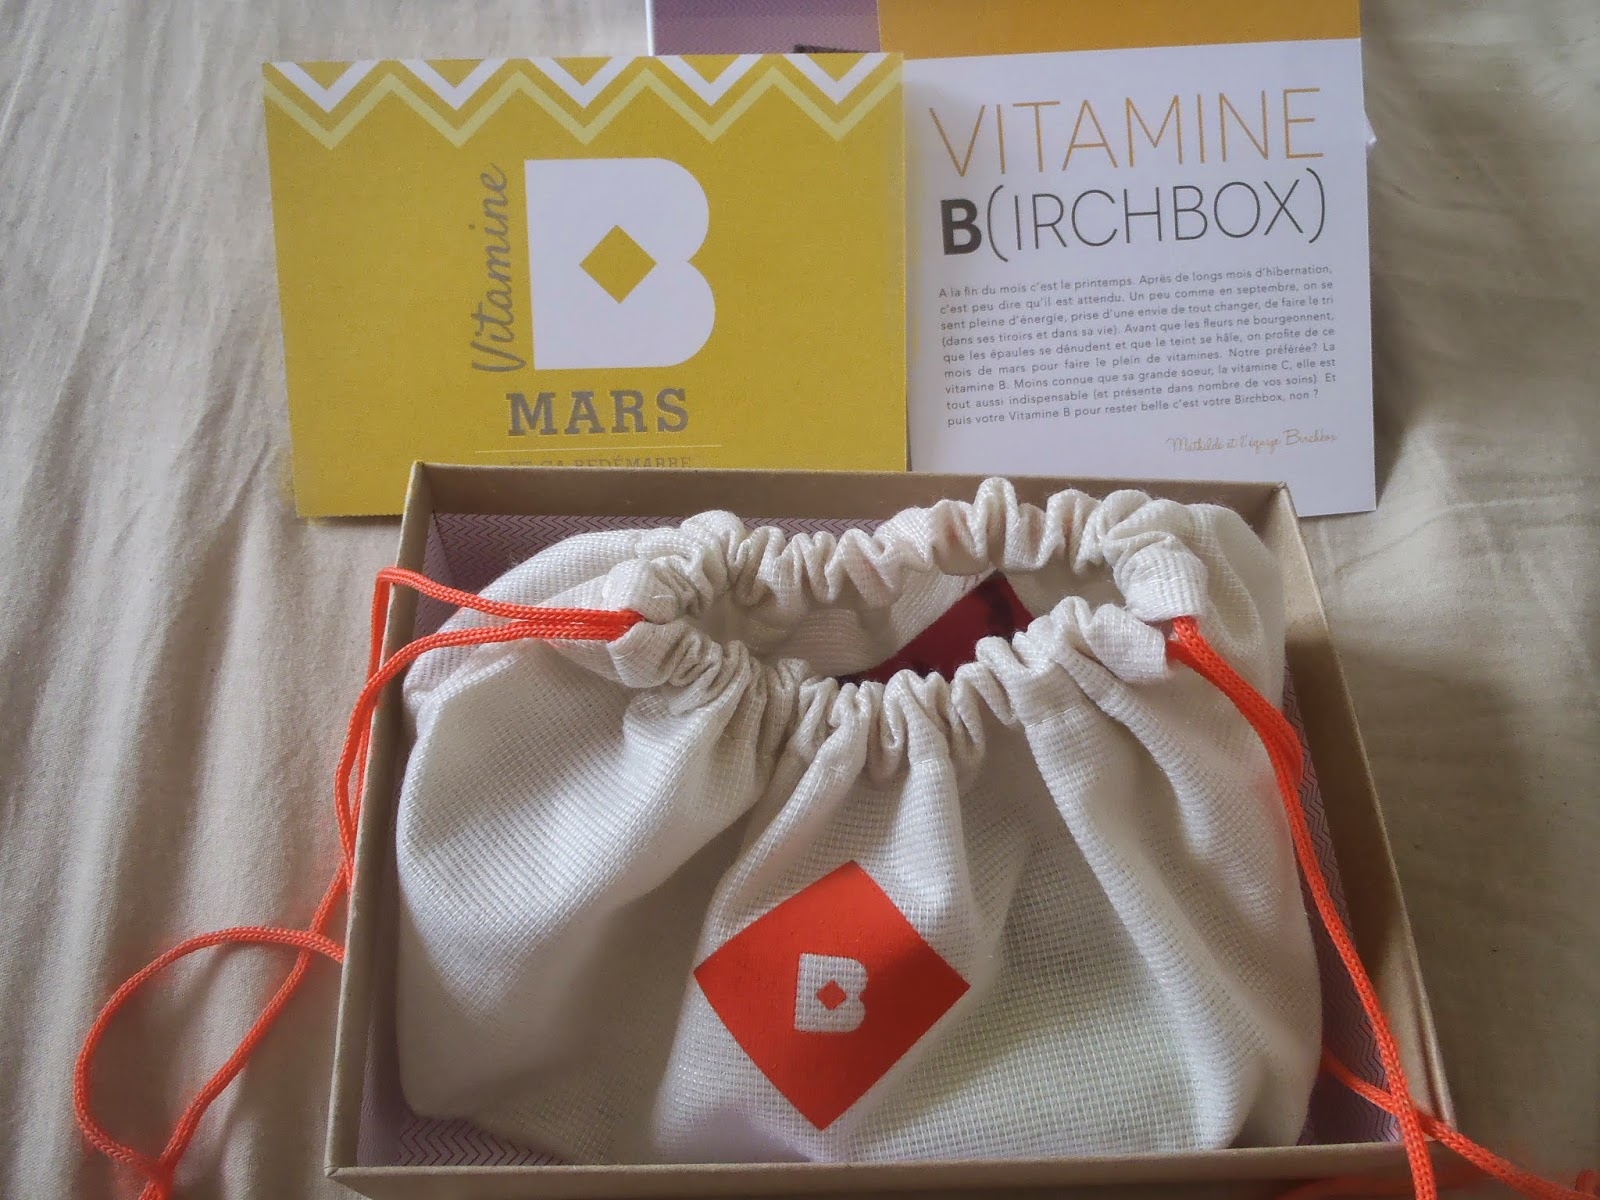 contenu birchbox 2014, carte de présentation, menu de la box, pochon orange de la box